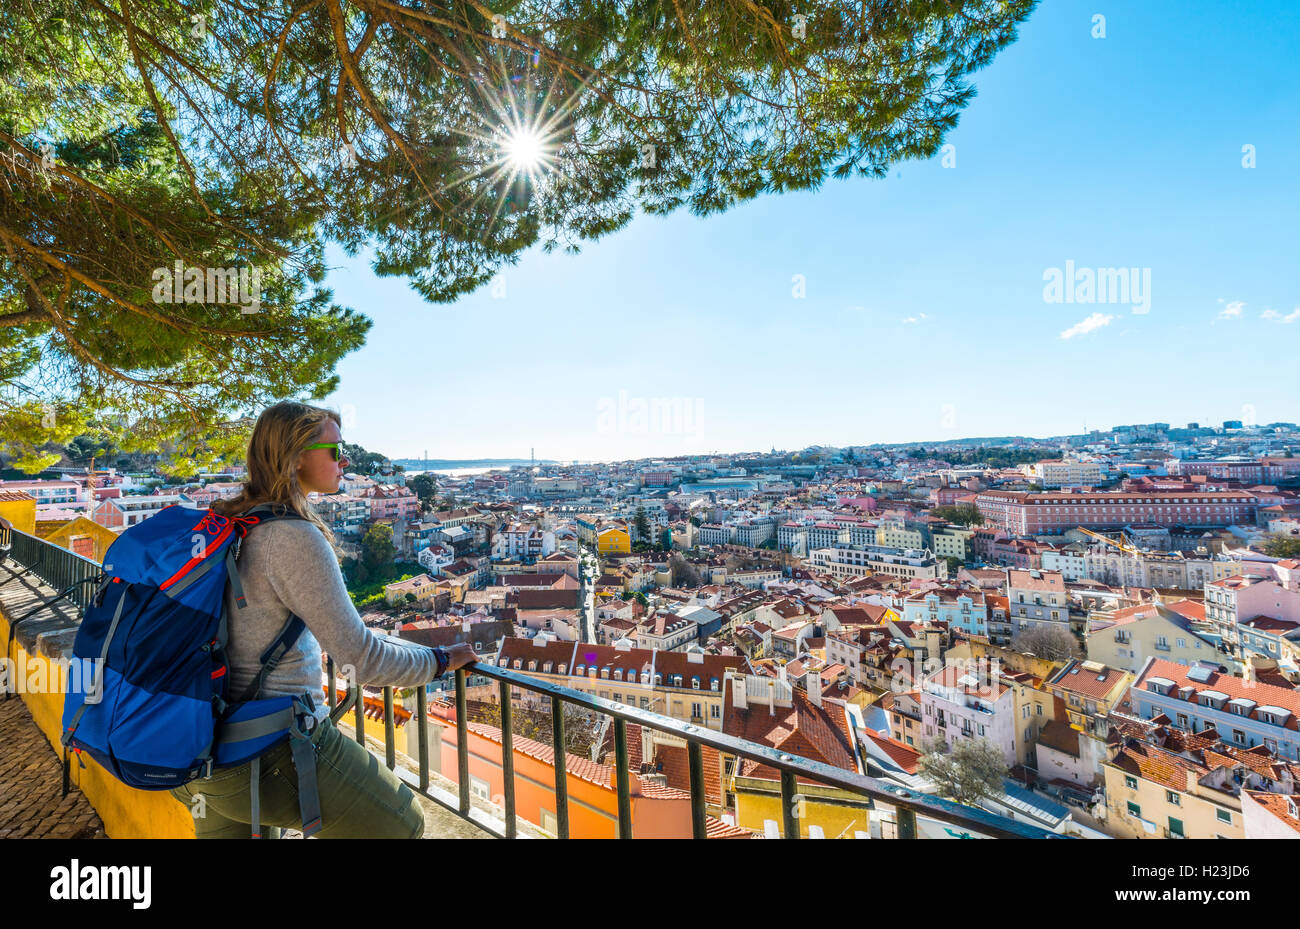 Woman looking at city, Graça viewpoint, Lisbon, Portugal - Stock Image